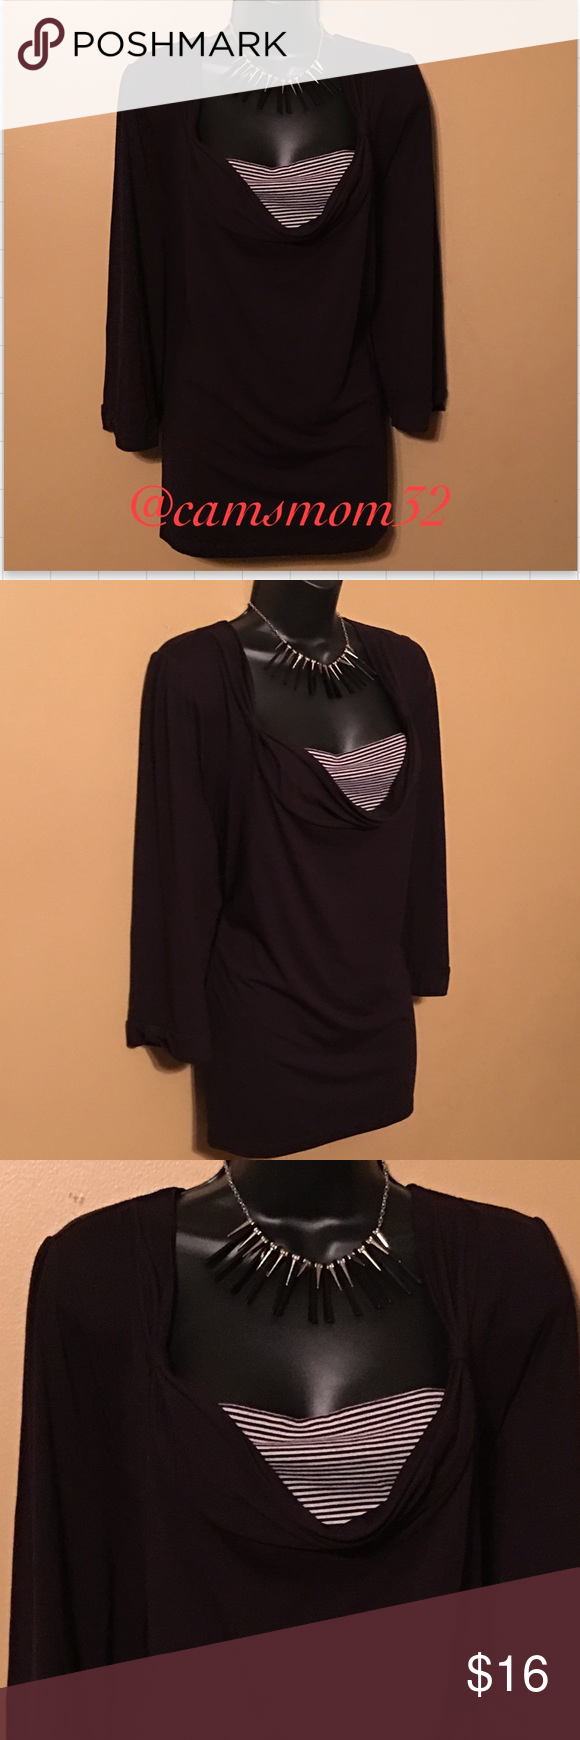 Cato long sleeve black top Like new condition, size 26/28. Bundle more items and save. Cato Tops